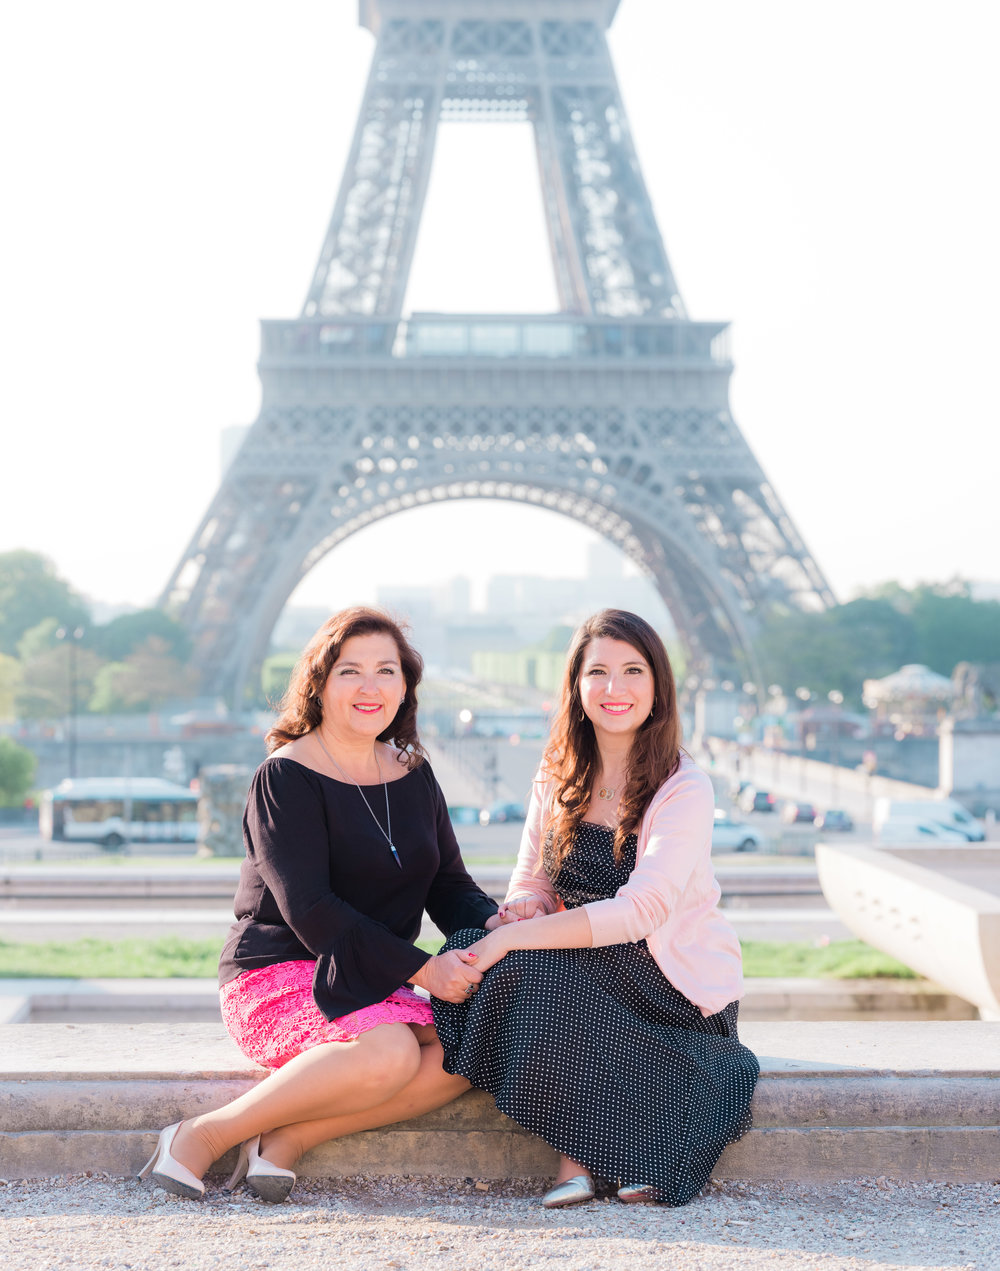 mother and daughter picture me paris photo shoot in paris france at the eiffel tower